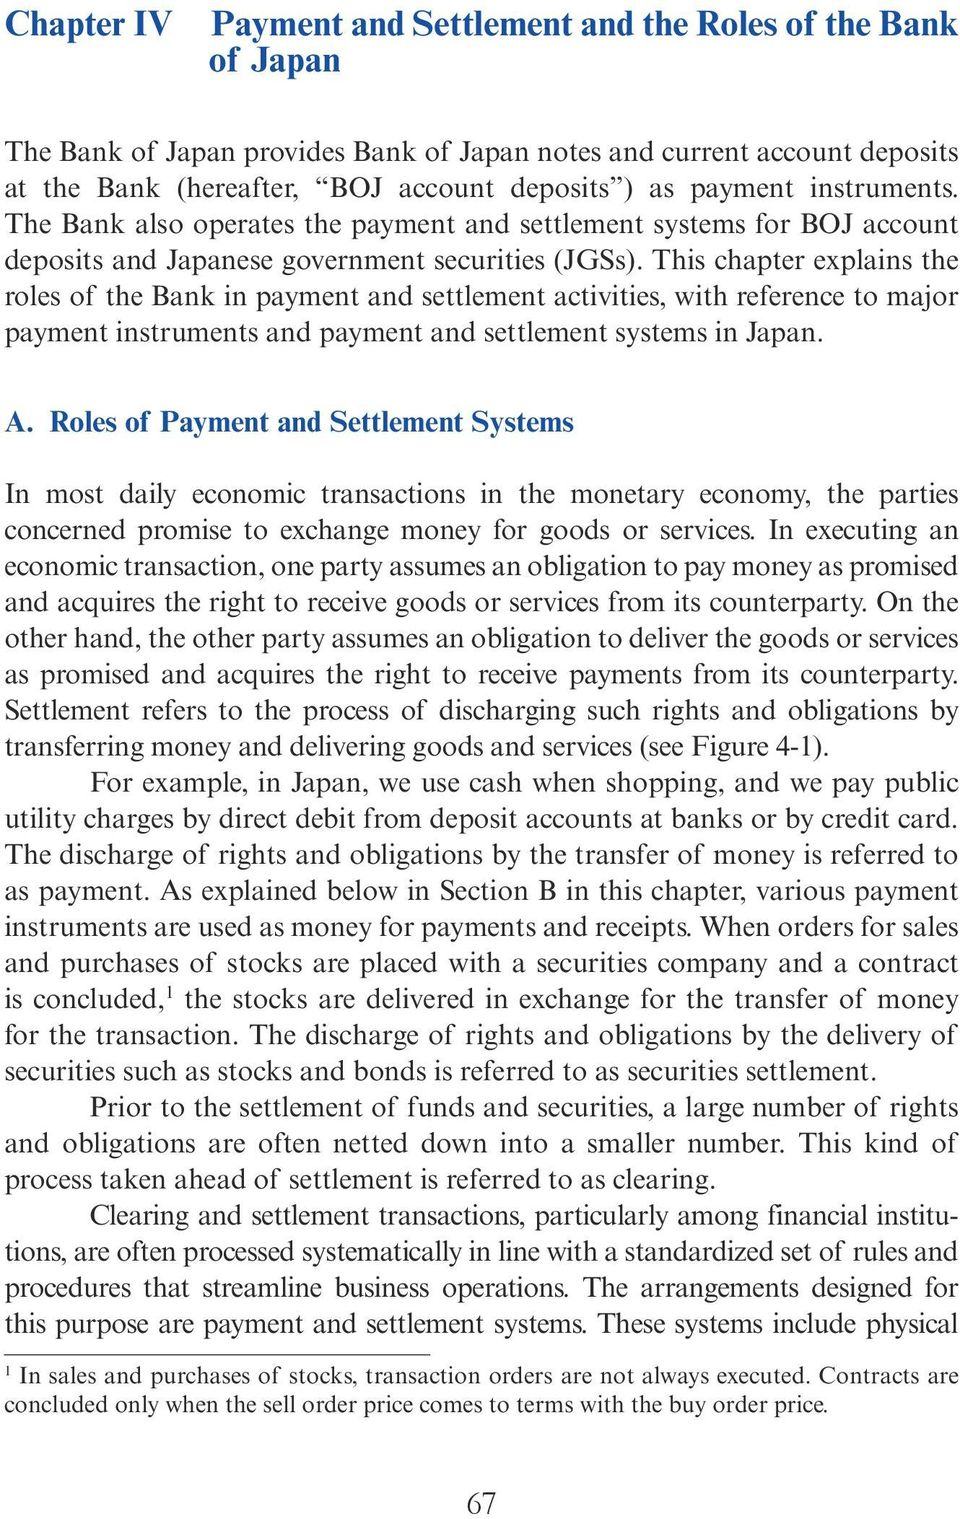 This chapter explains the roles of the Bank in payment and settlement activities, with reference to major payment instruments and payment and settlement systems in Japan. A.